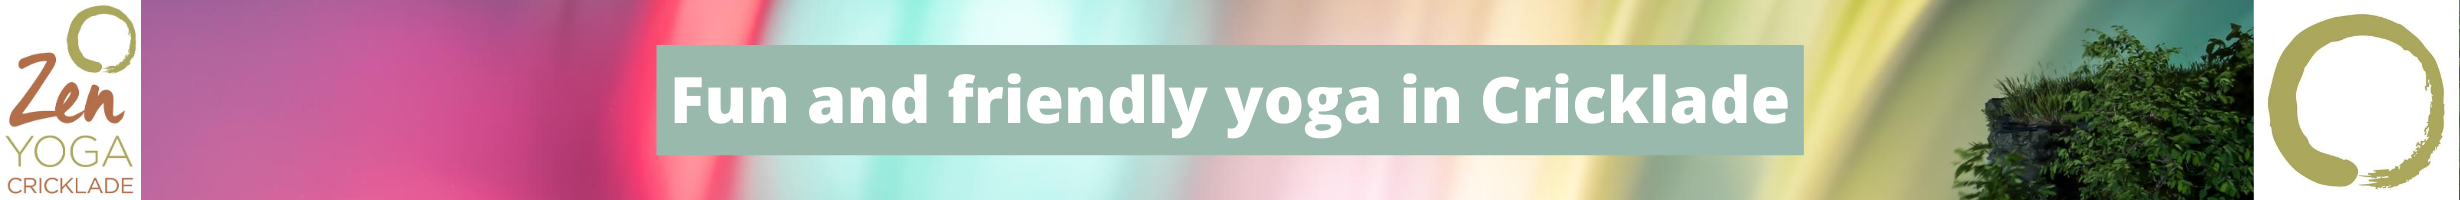 Zen Yoga Cricklade ~ fun and friendly local yoga